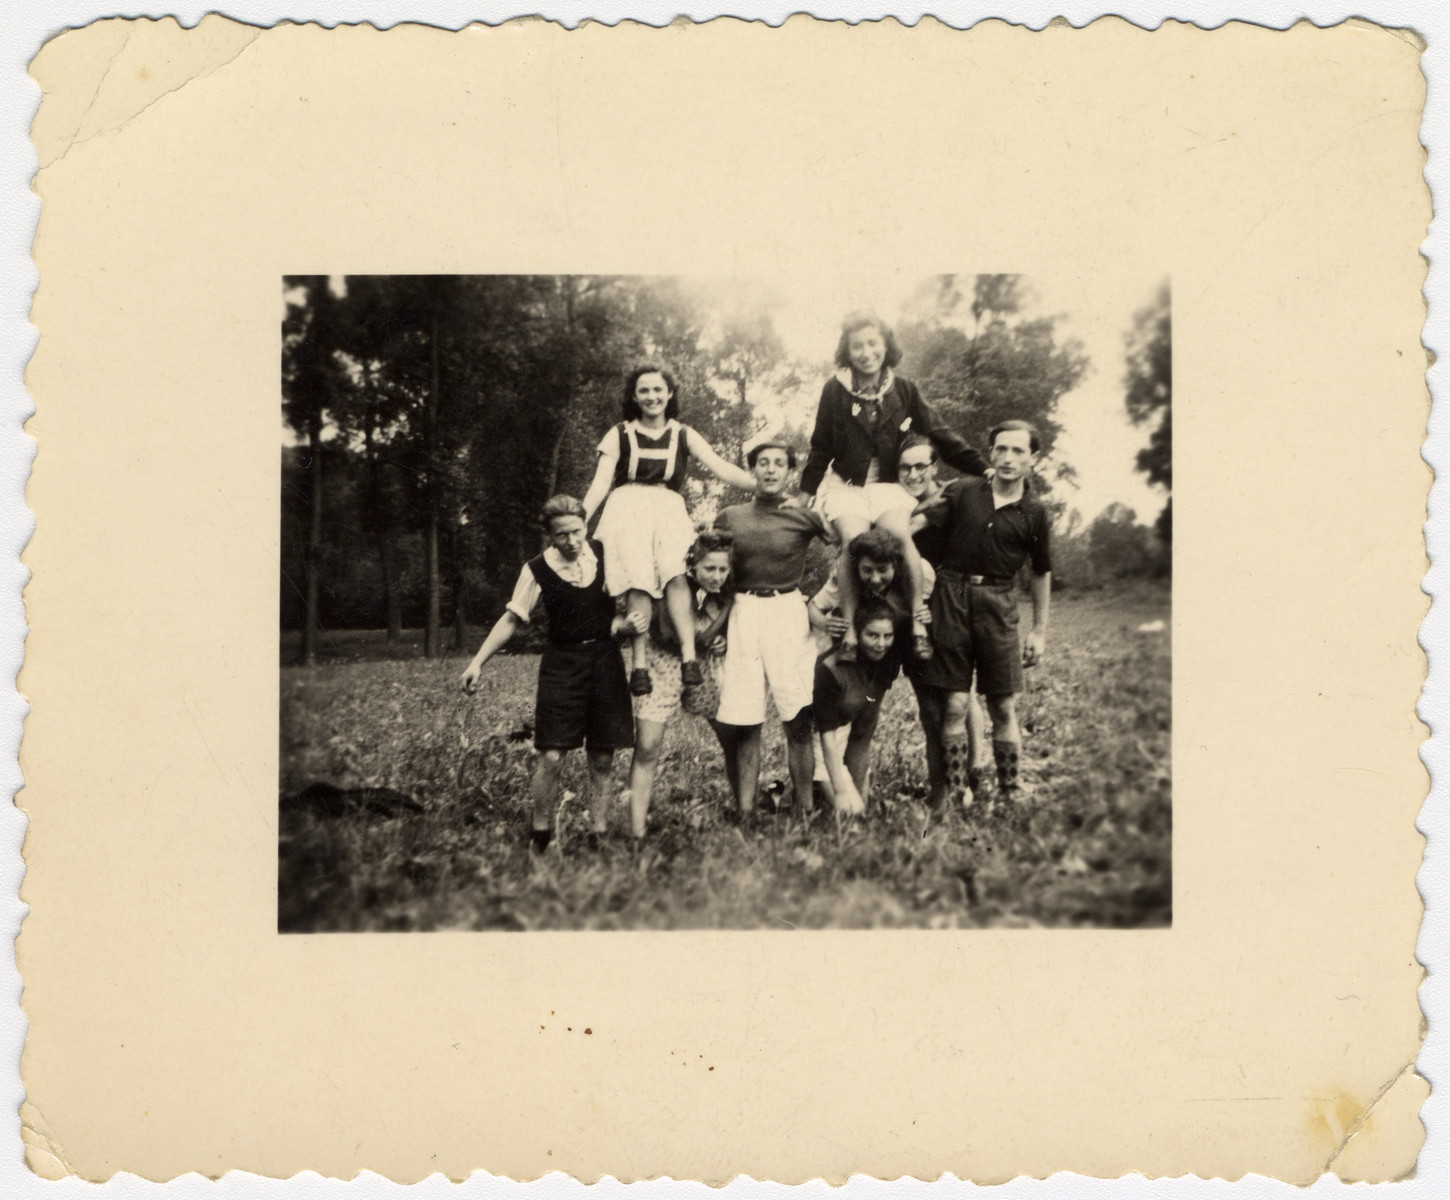 Students in La Ramee agricultural school pose, some on each other's shoulders.  Haim Sephia is pictured standing in the center.  Also picured are Shulinski (left), Paulette Weinstadt, Simone Firminski, Eva and Charles Lishinski.  Sitting on shoulders are Marie and Basia.  Simone Firminski and Marie were deported.